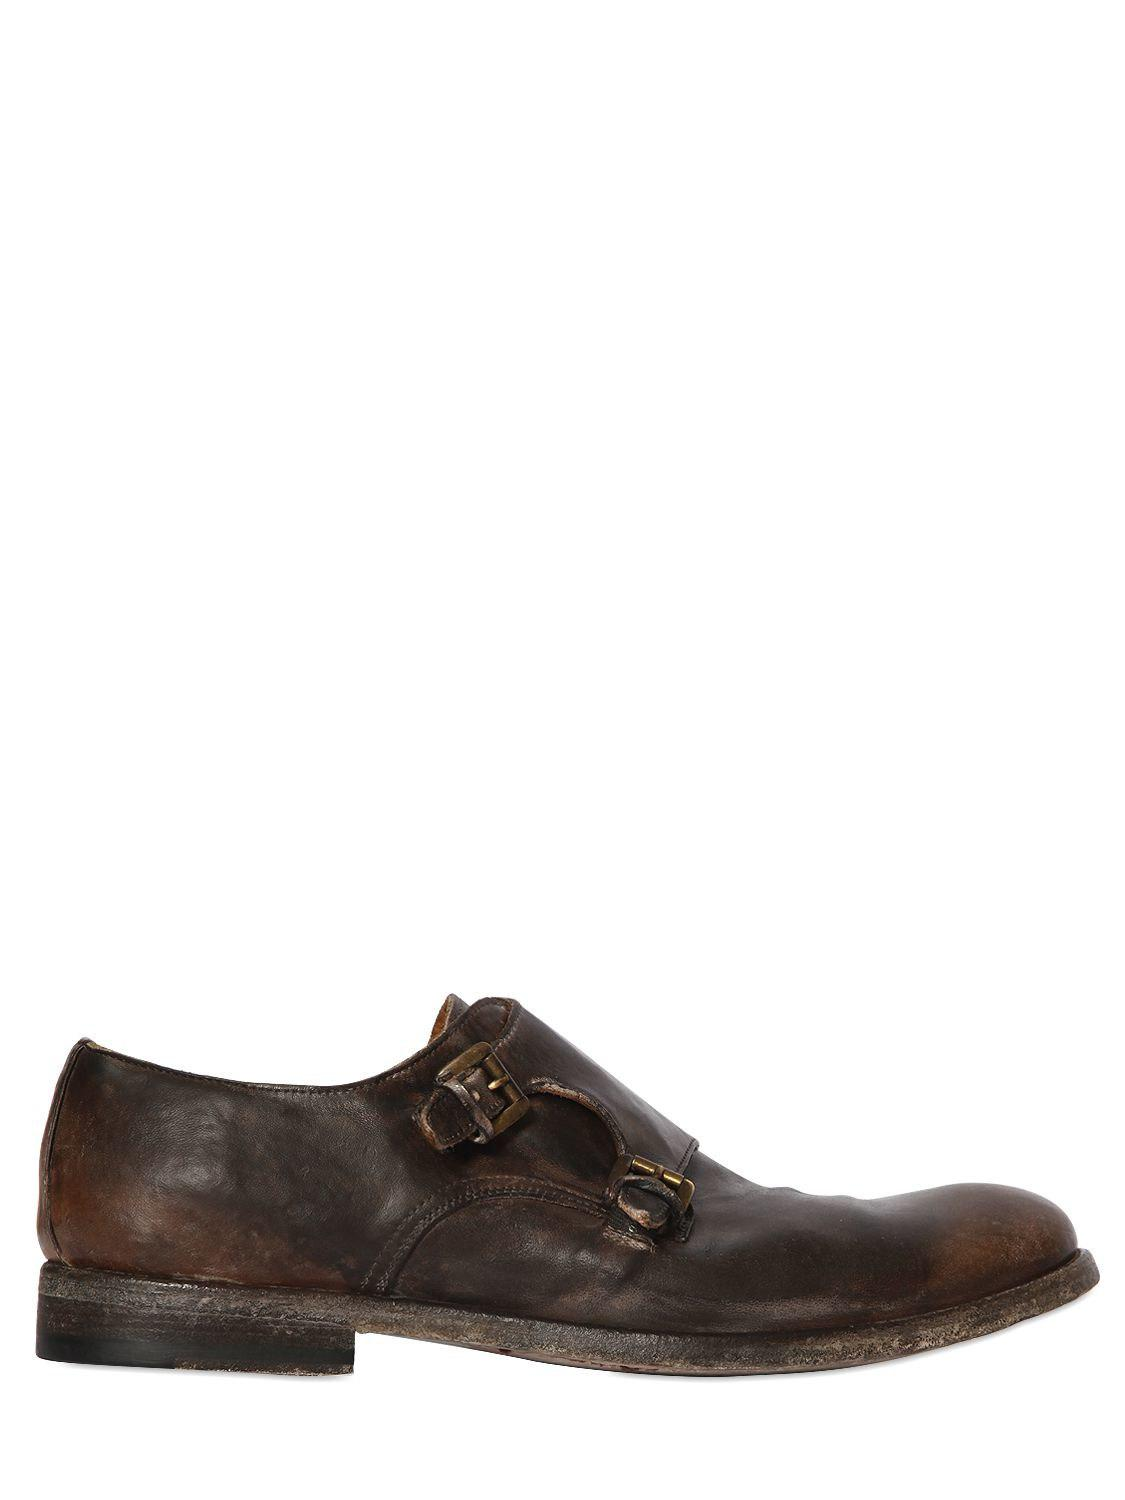 SHOTOWASHED LEATHER MONK STRAP SHOES ktYDME